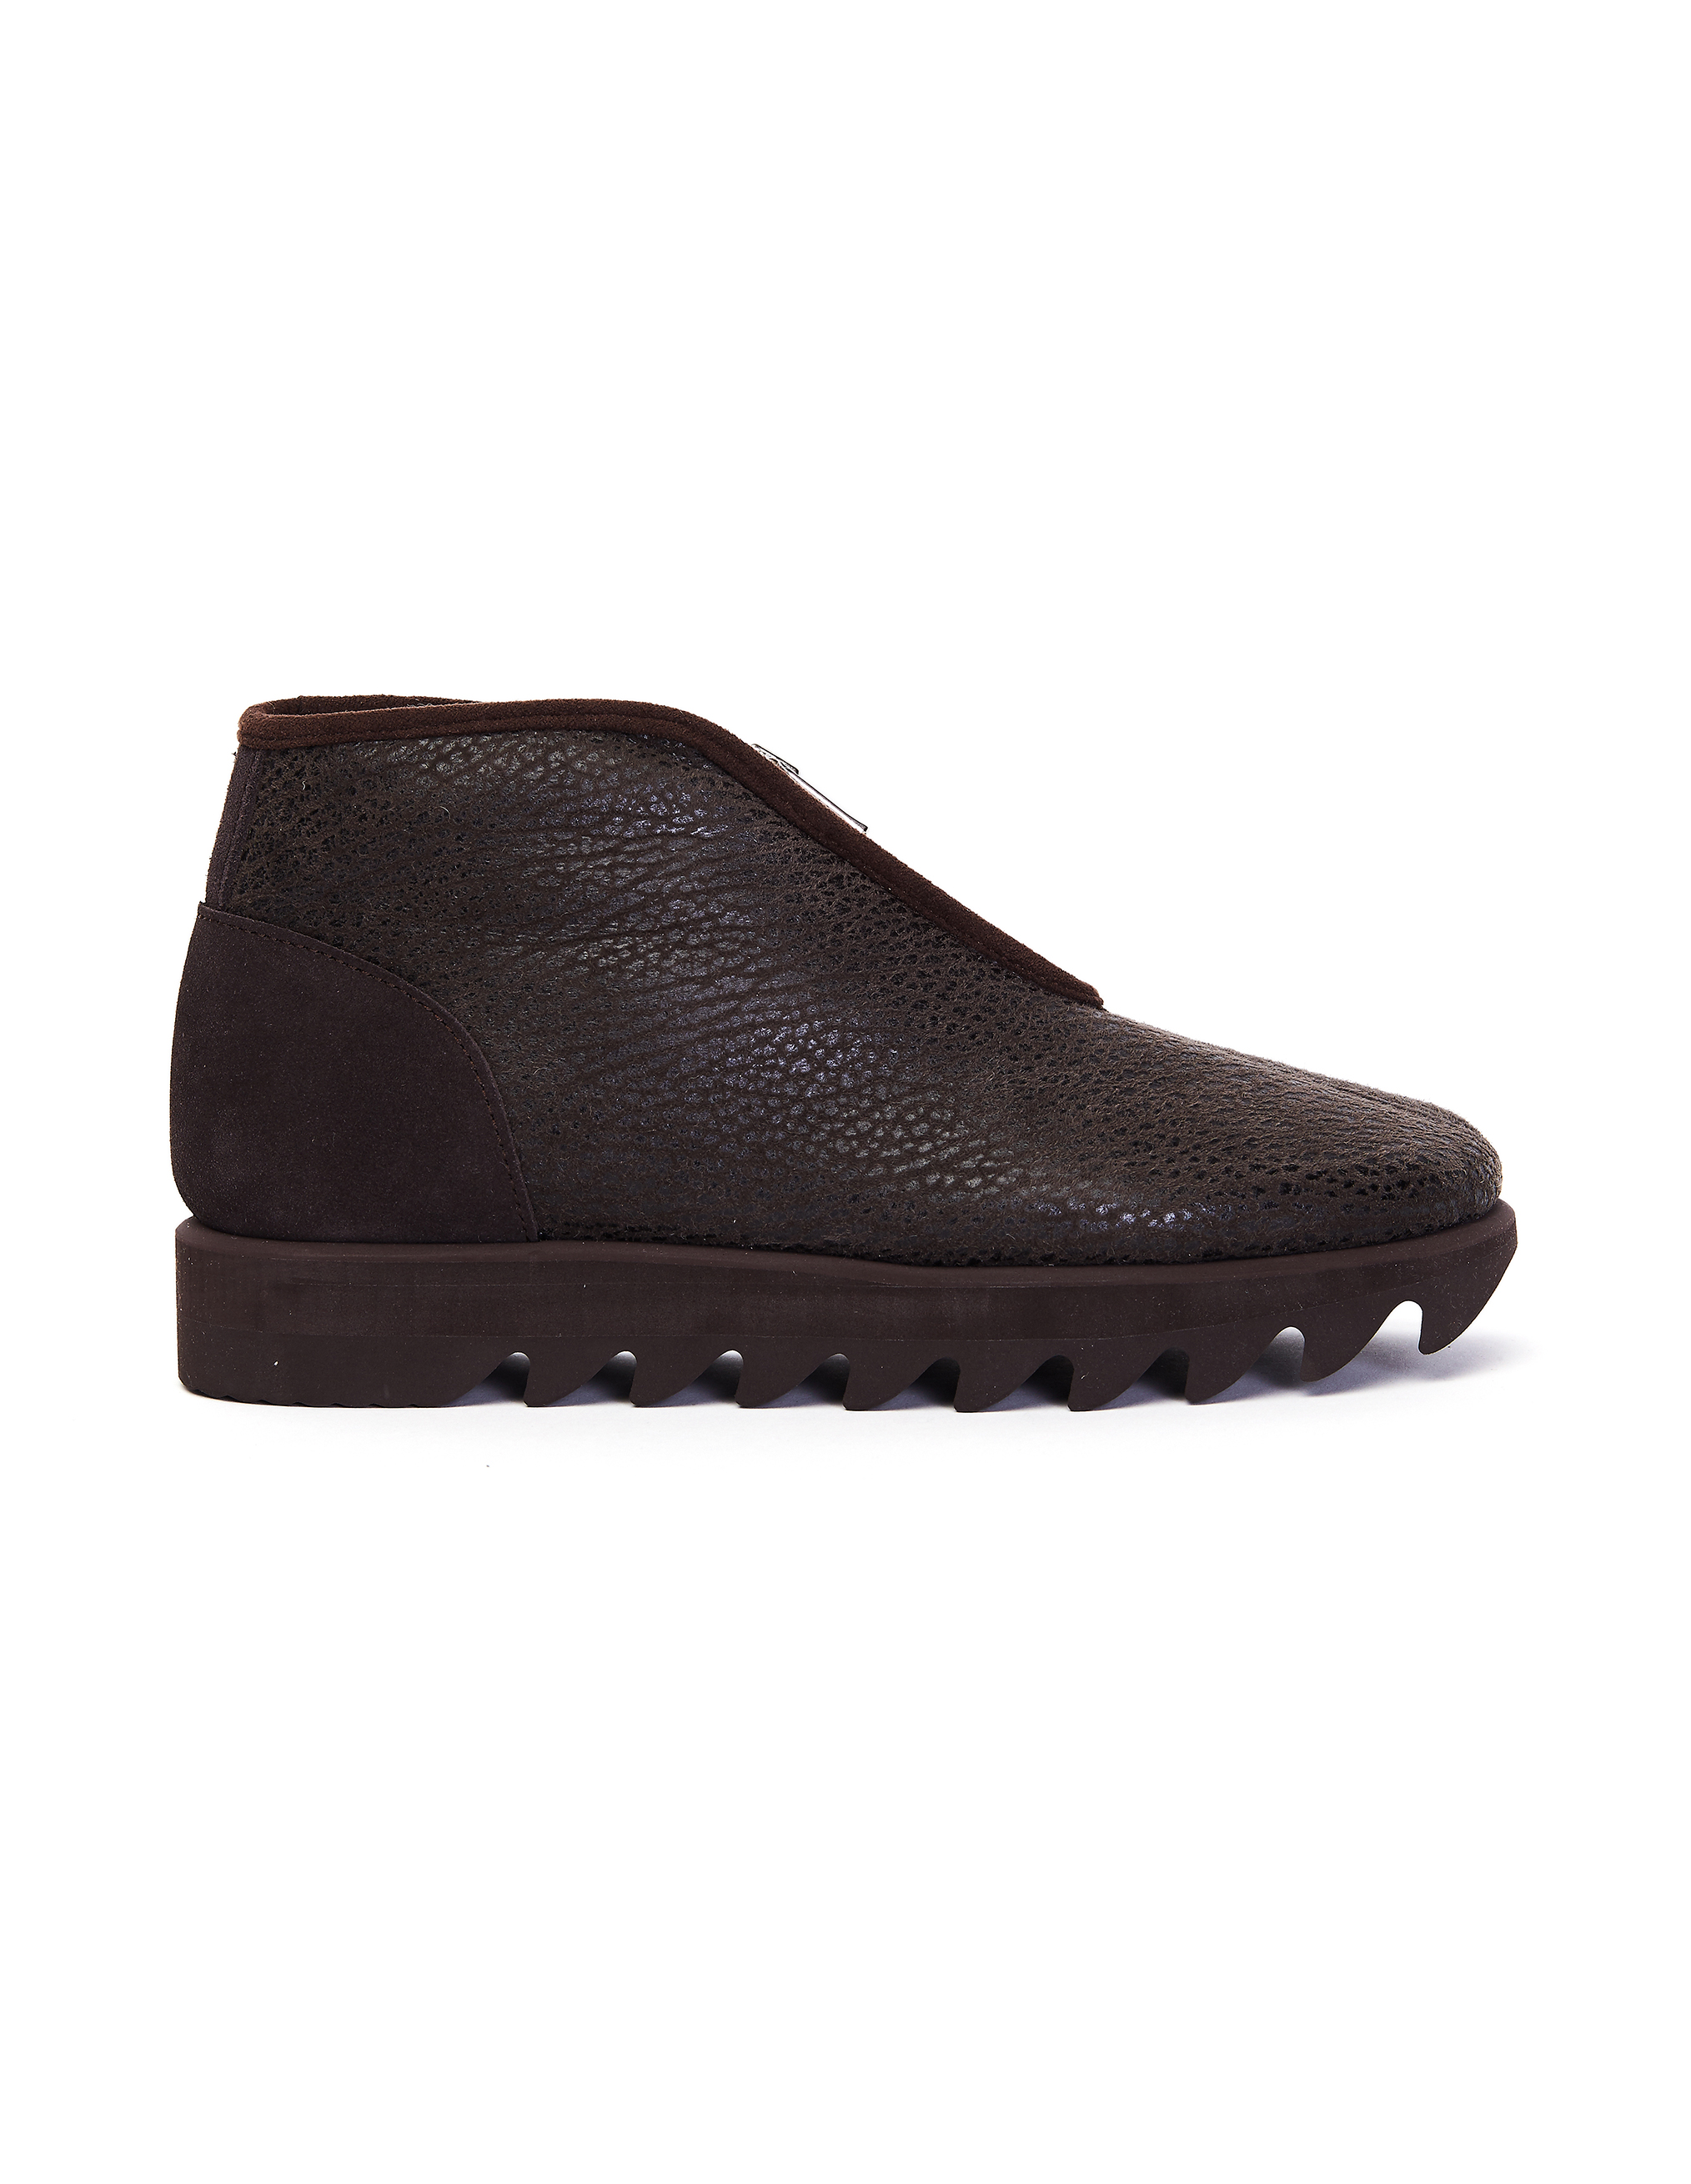 Hender Scheme Dark Brown Snuff Mouton Boots